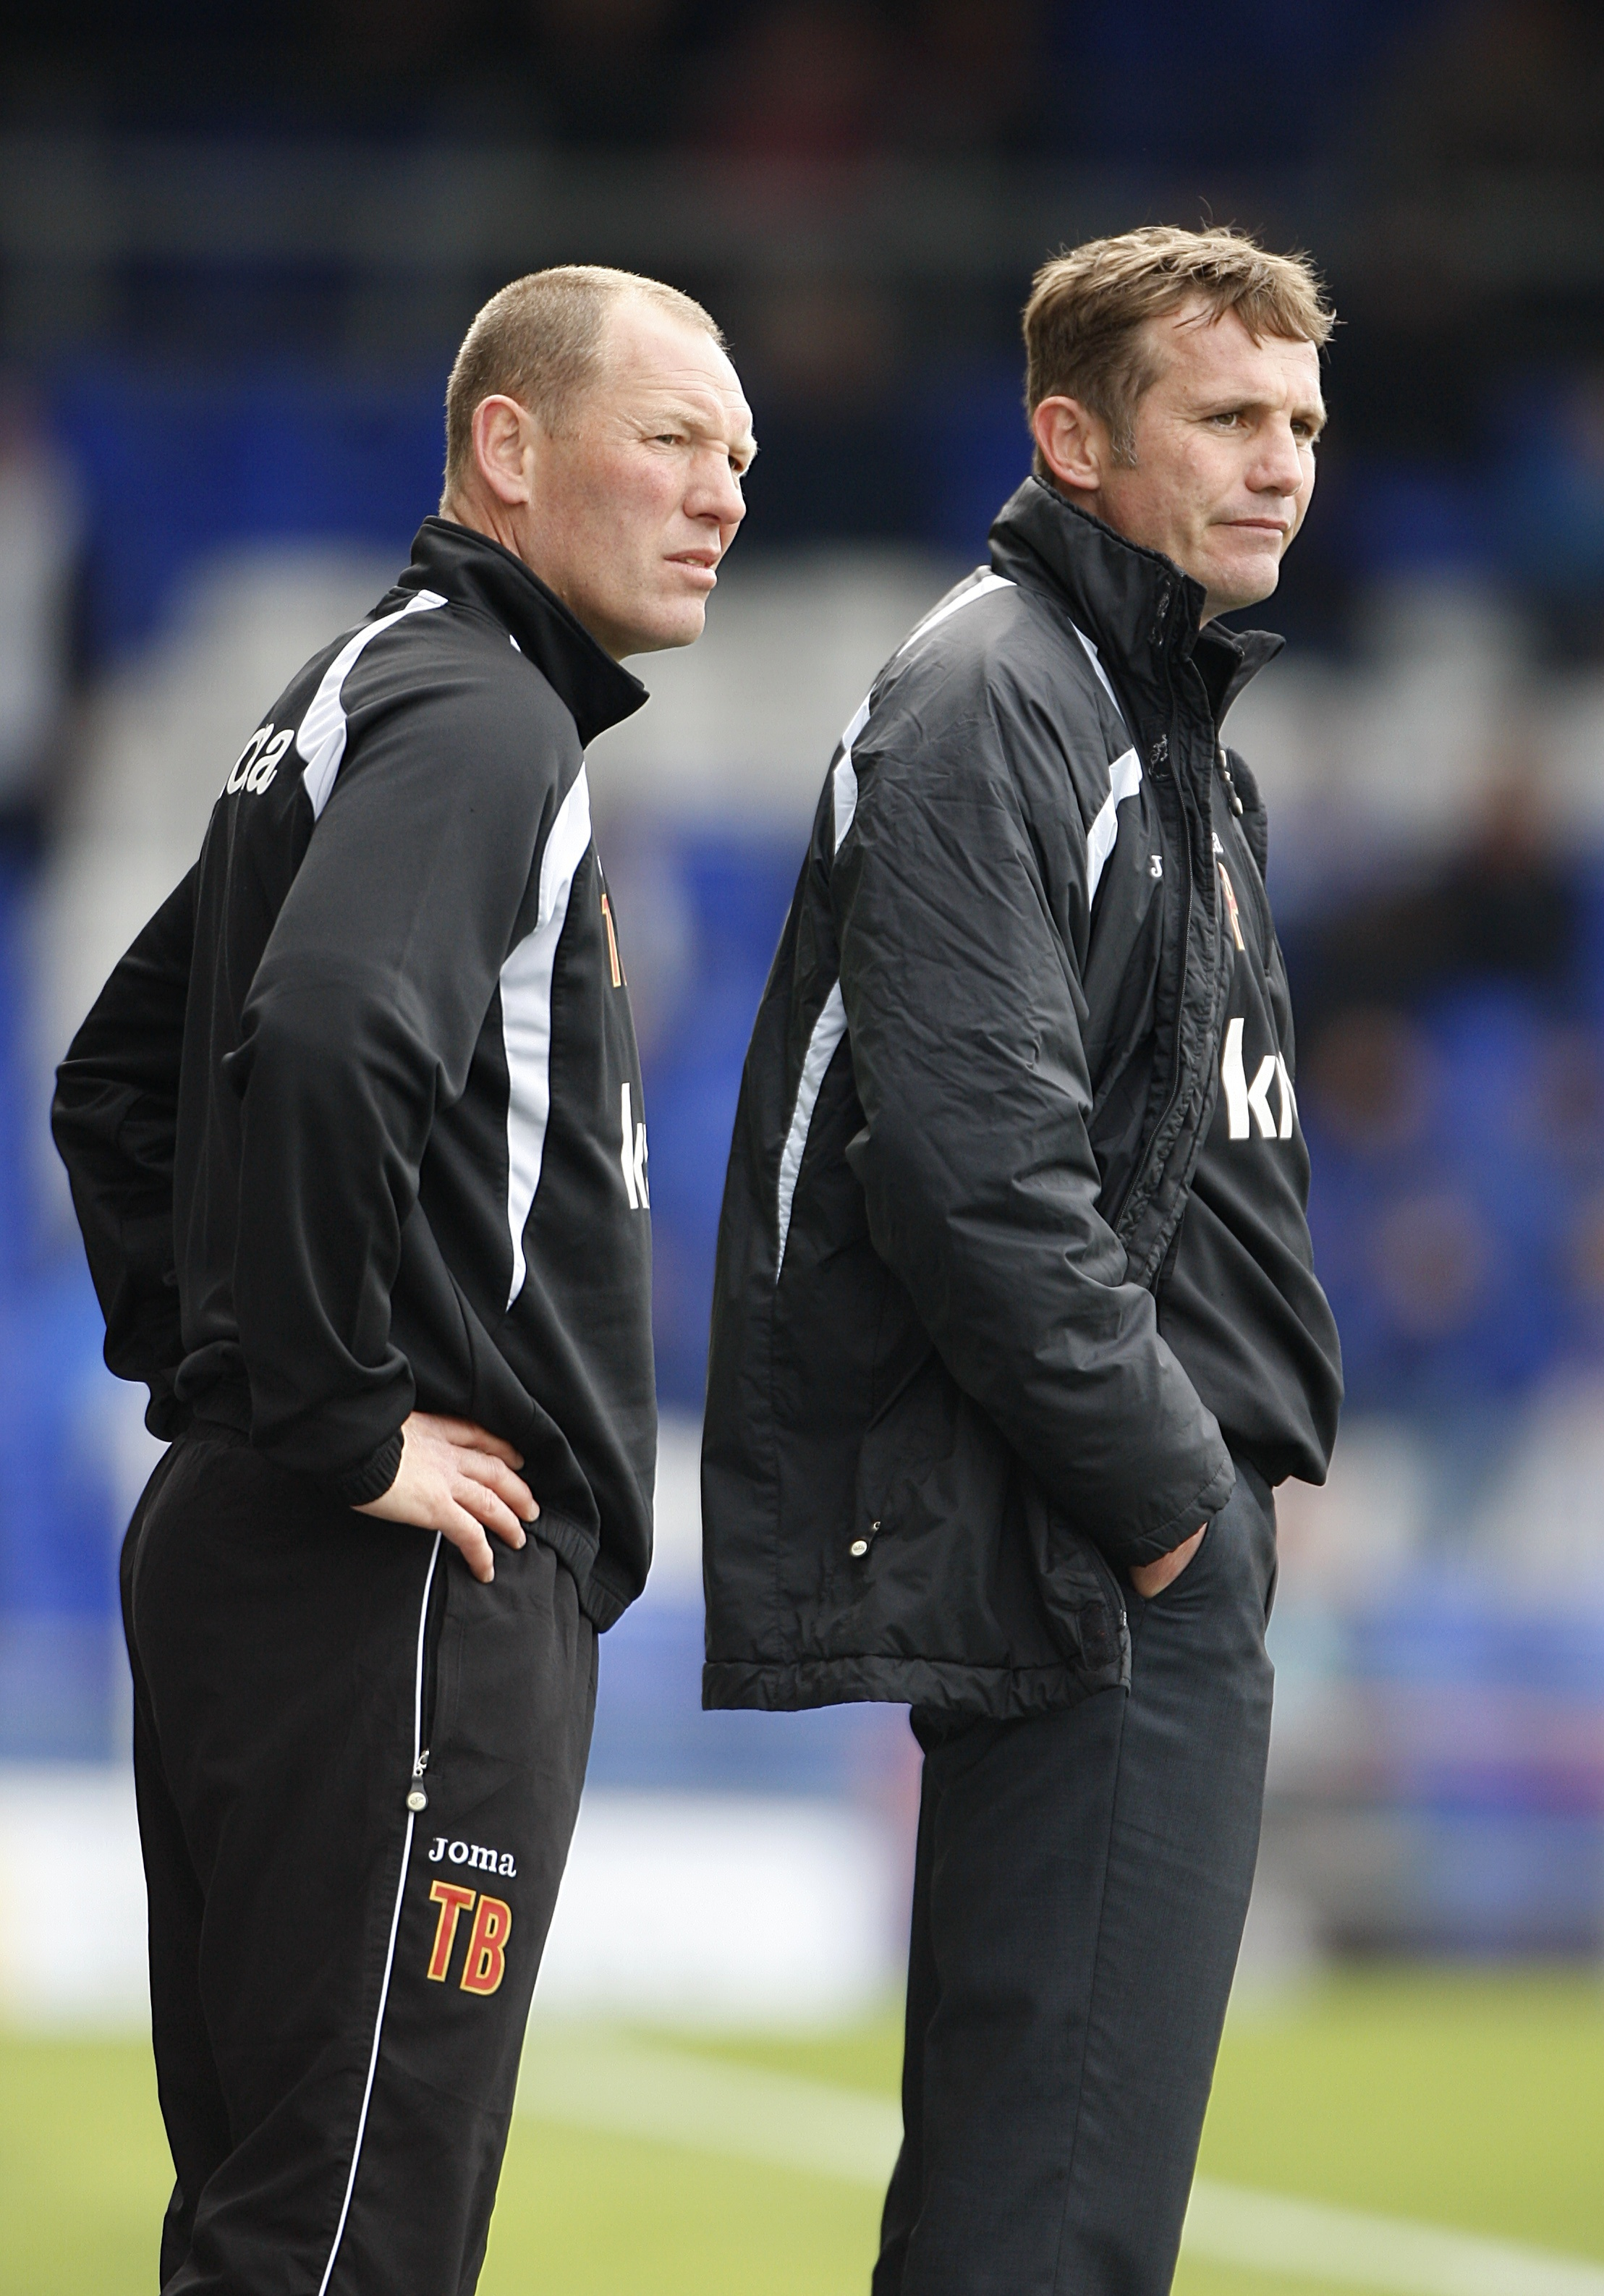 Tim Breacker, left, has not been paid for three months at Bolton Wanderers